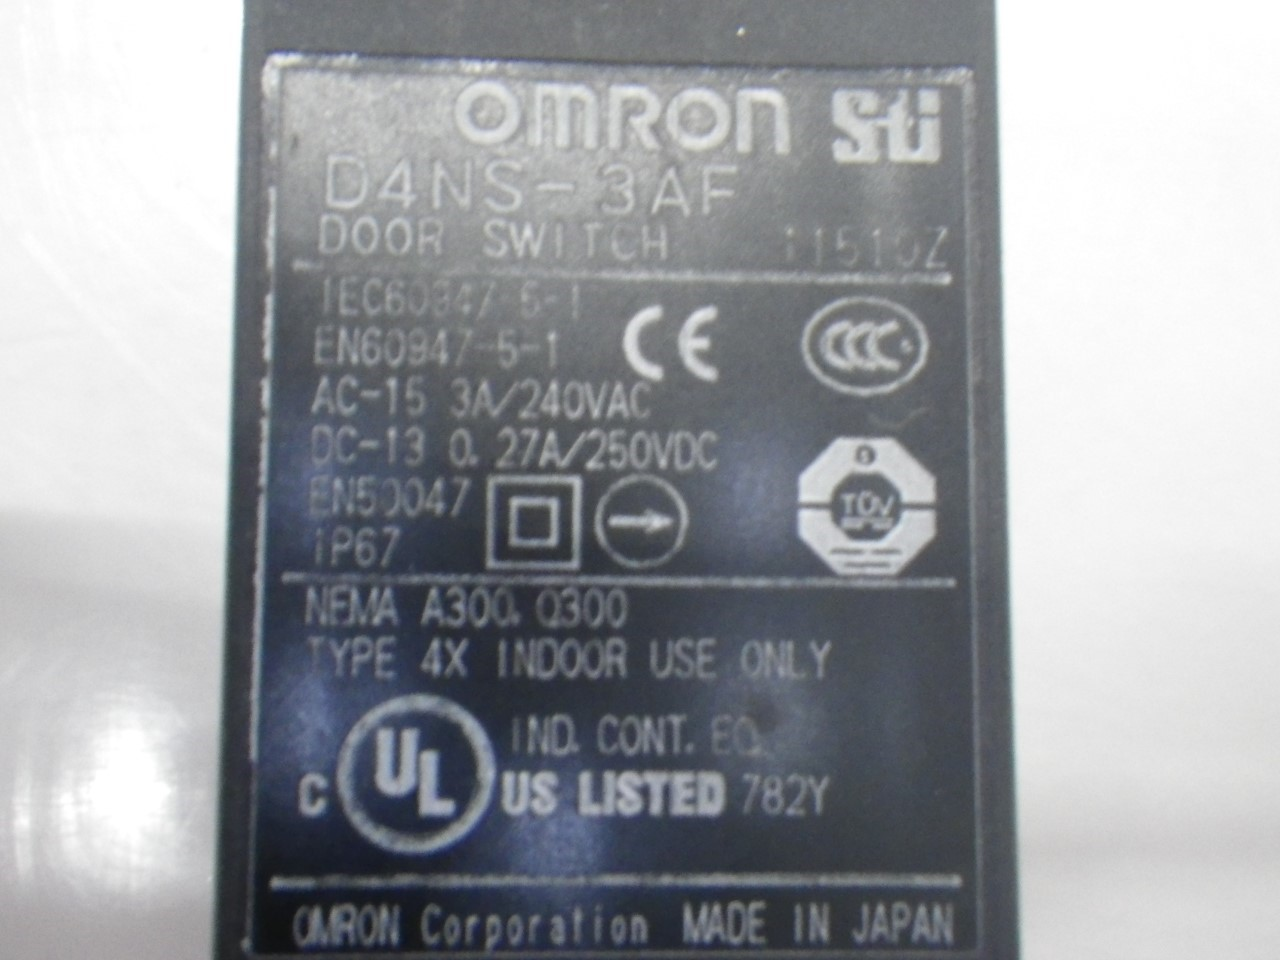 IMGP6811D4NS-3AFOmron Door Switch ,240 Vac, 3 A (Barely Used) (8)